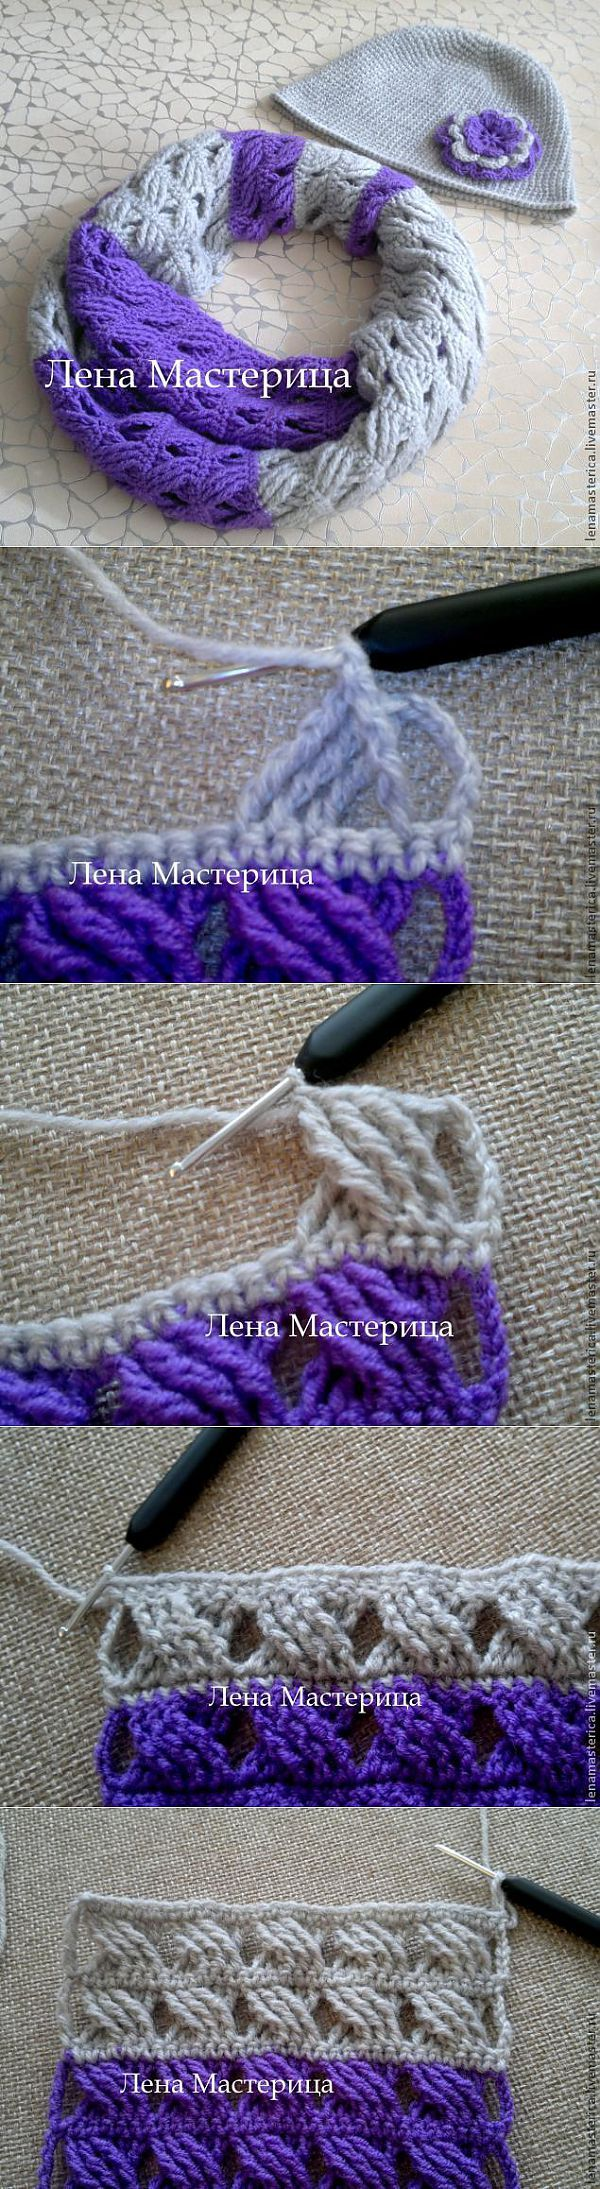 .Tutorial for Crochet, Knitting, Crafts.....Keka❤❤❤